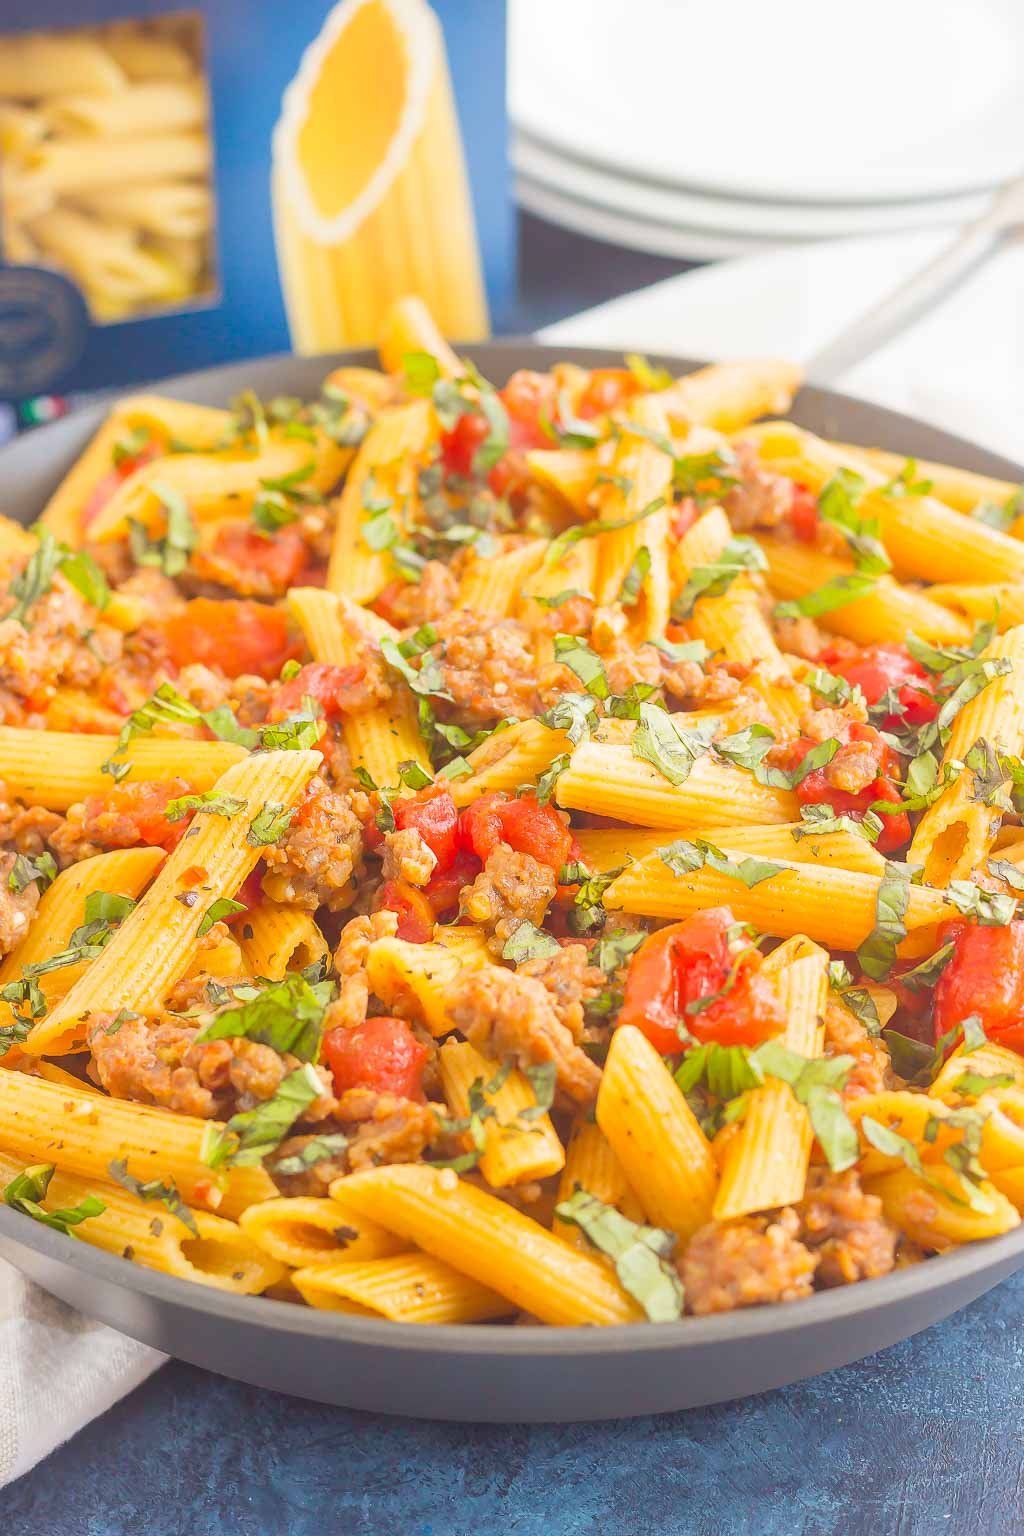 tomato basil pasta with italian sausage in large gray bowl